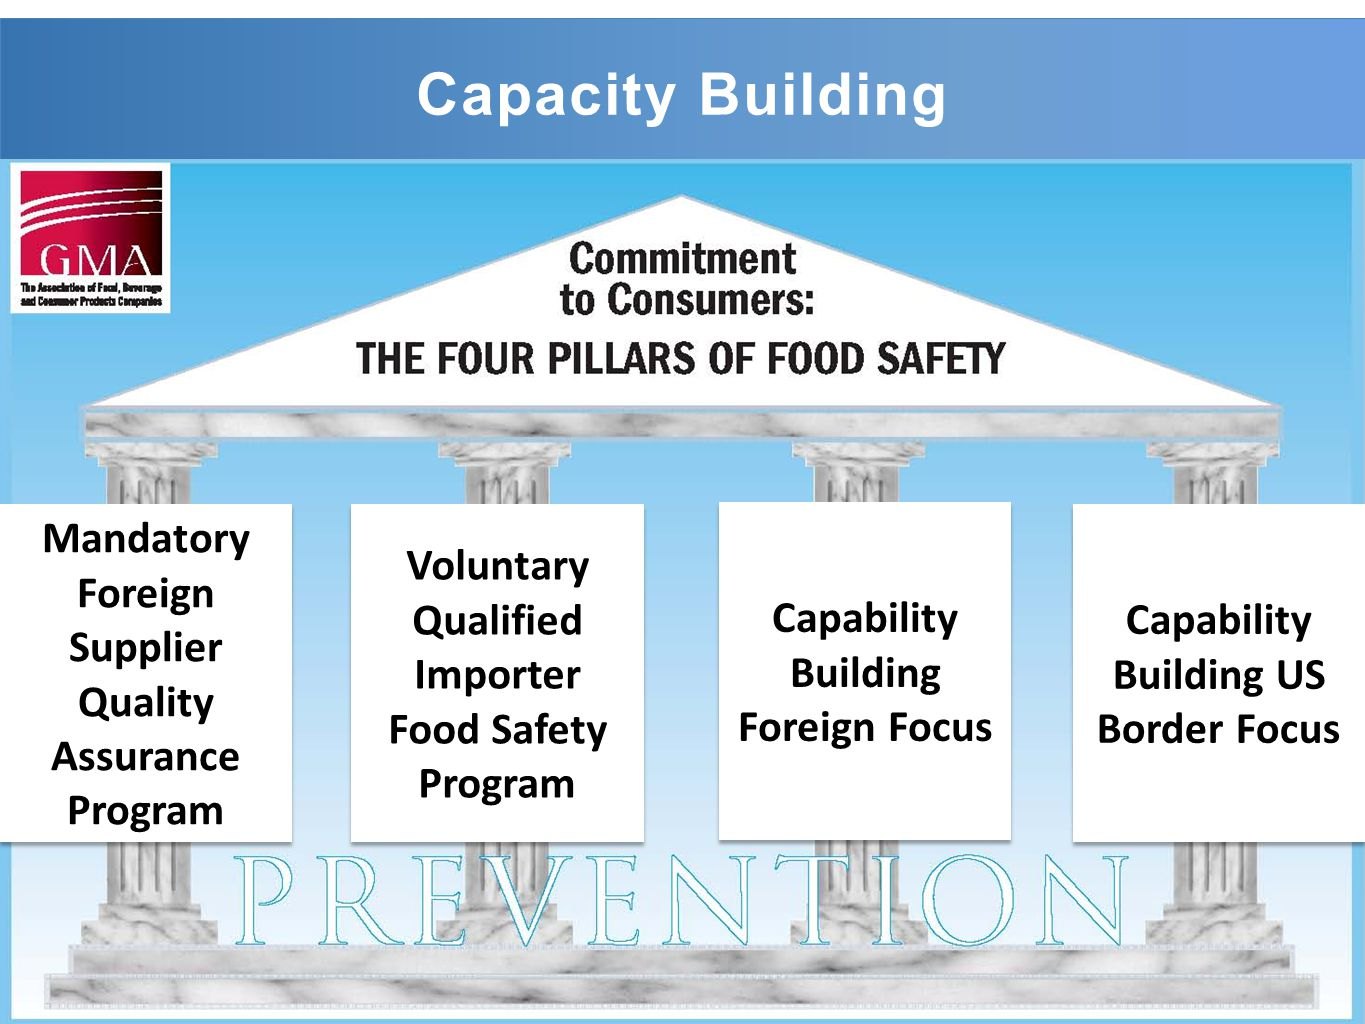 Capacity Building Mandatory Foreign Supplier Quality Assurance Program Voluntary Qualified Importer Food Safety Program Capability Building Foreign Focus Capability Building US Border Focus